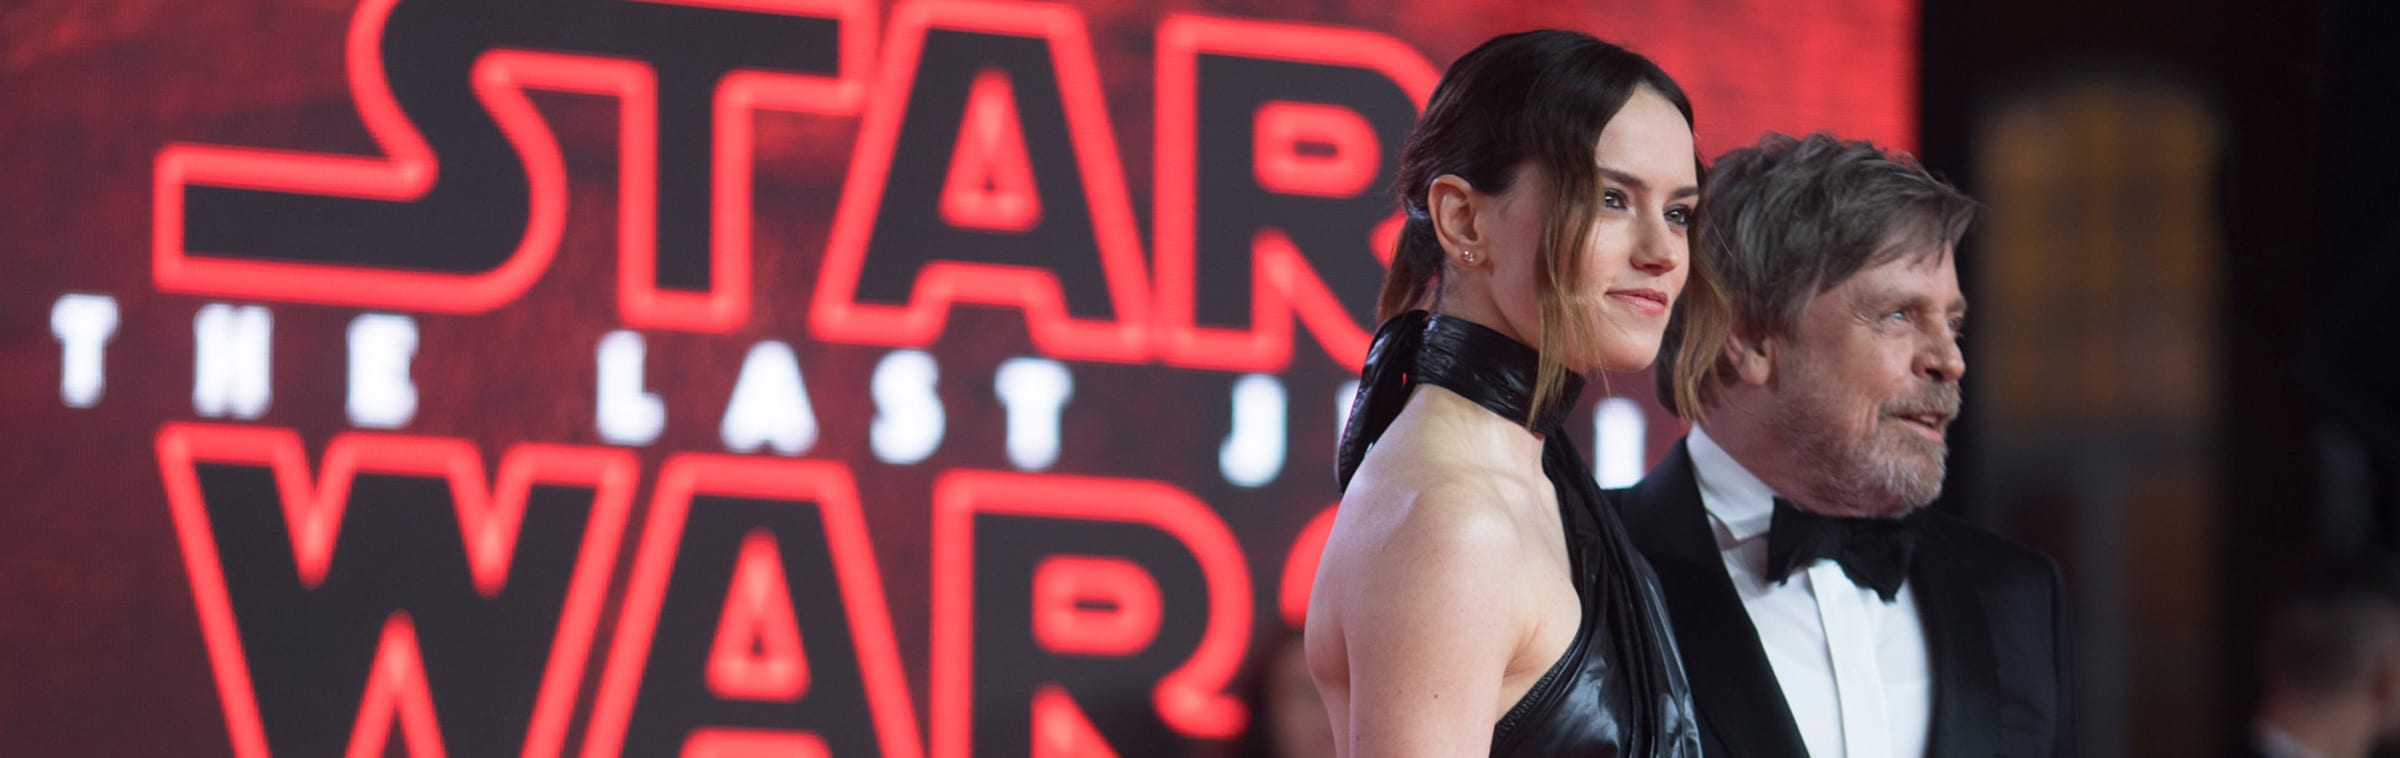 Close-up of Daisy Ridley and Mark Hamill on the red carpet at the Star: Wars The Last Jedi premiere